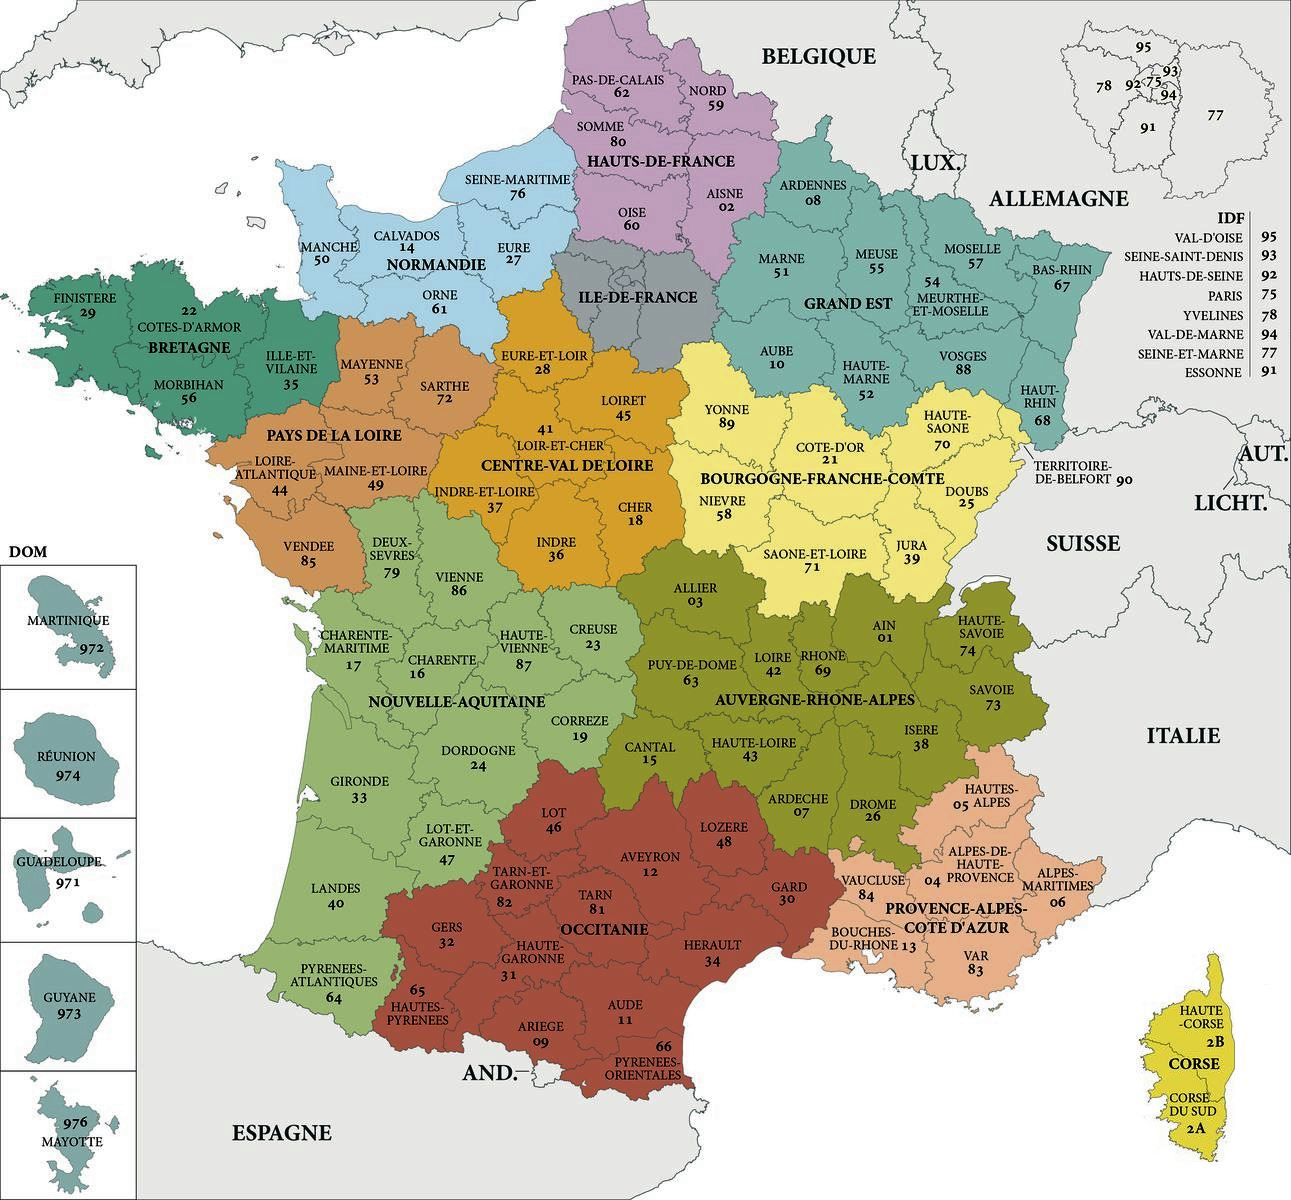 Carte De France Departements : Carte Des Départements De France destiné Département De La France Carte